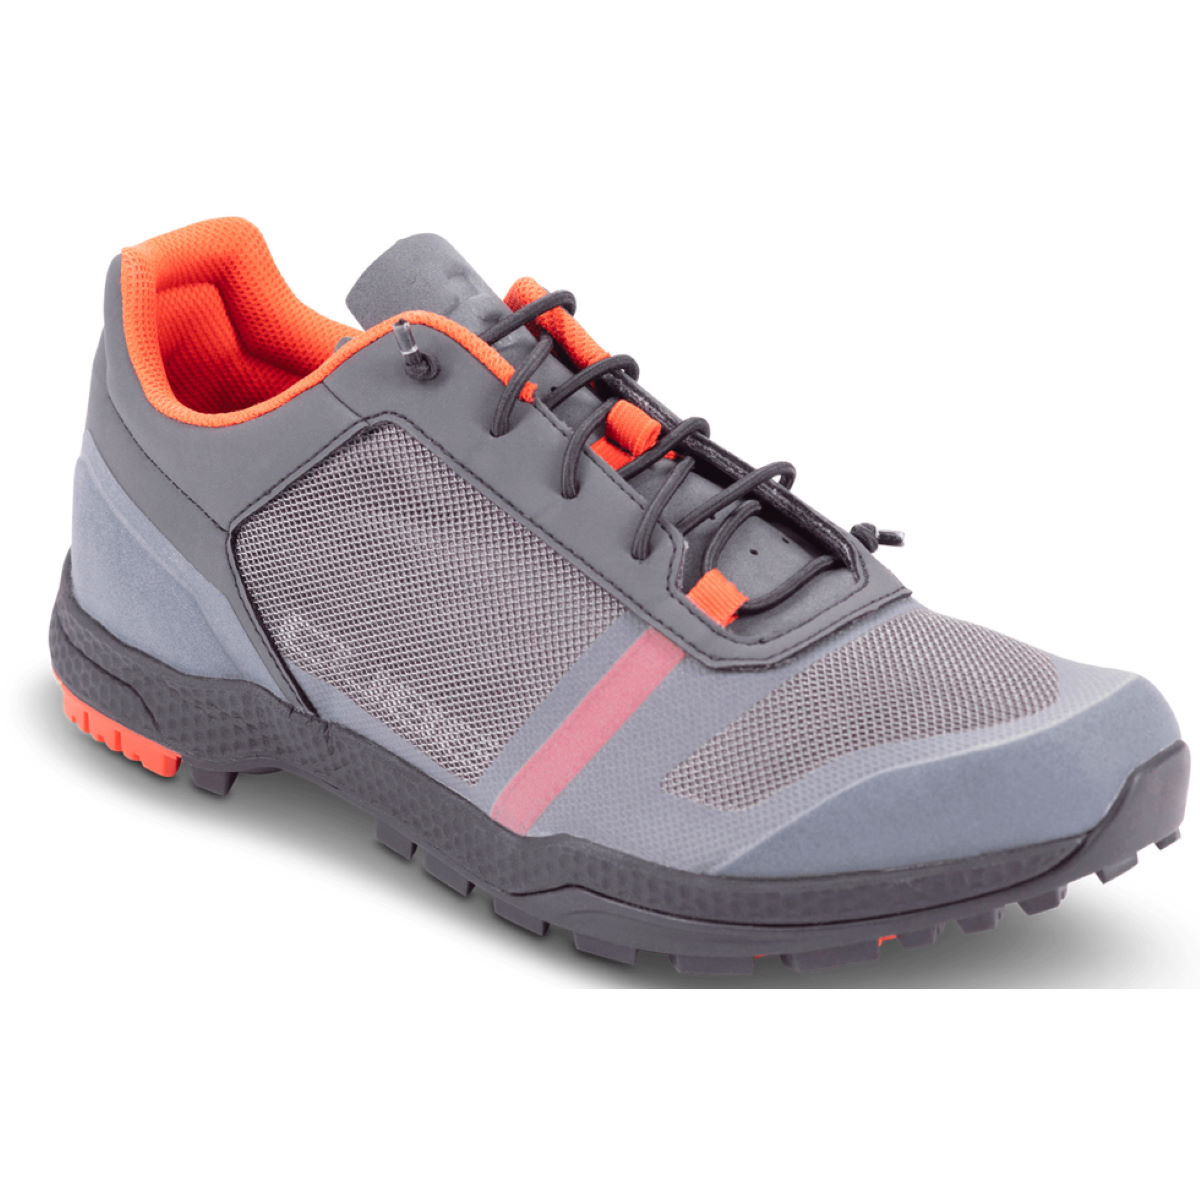 Cube Cube  ATX Lynx Shoes   Cycling Shoes